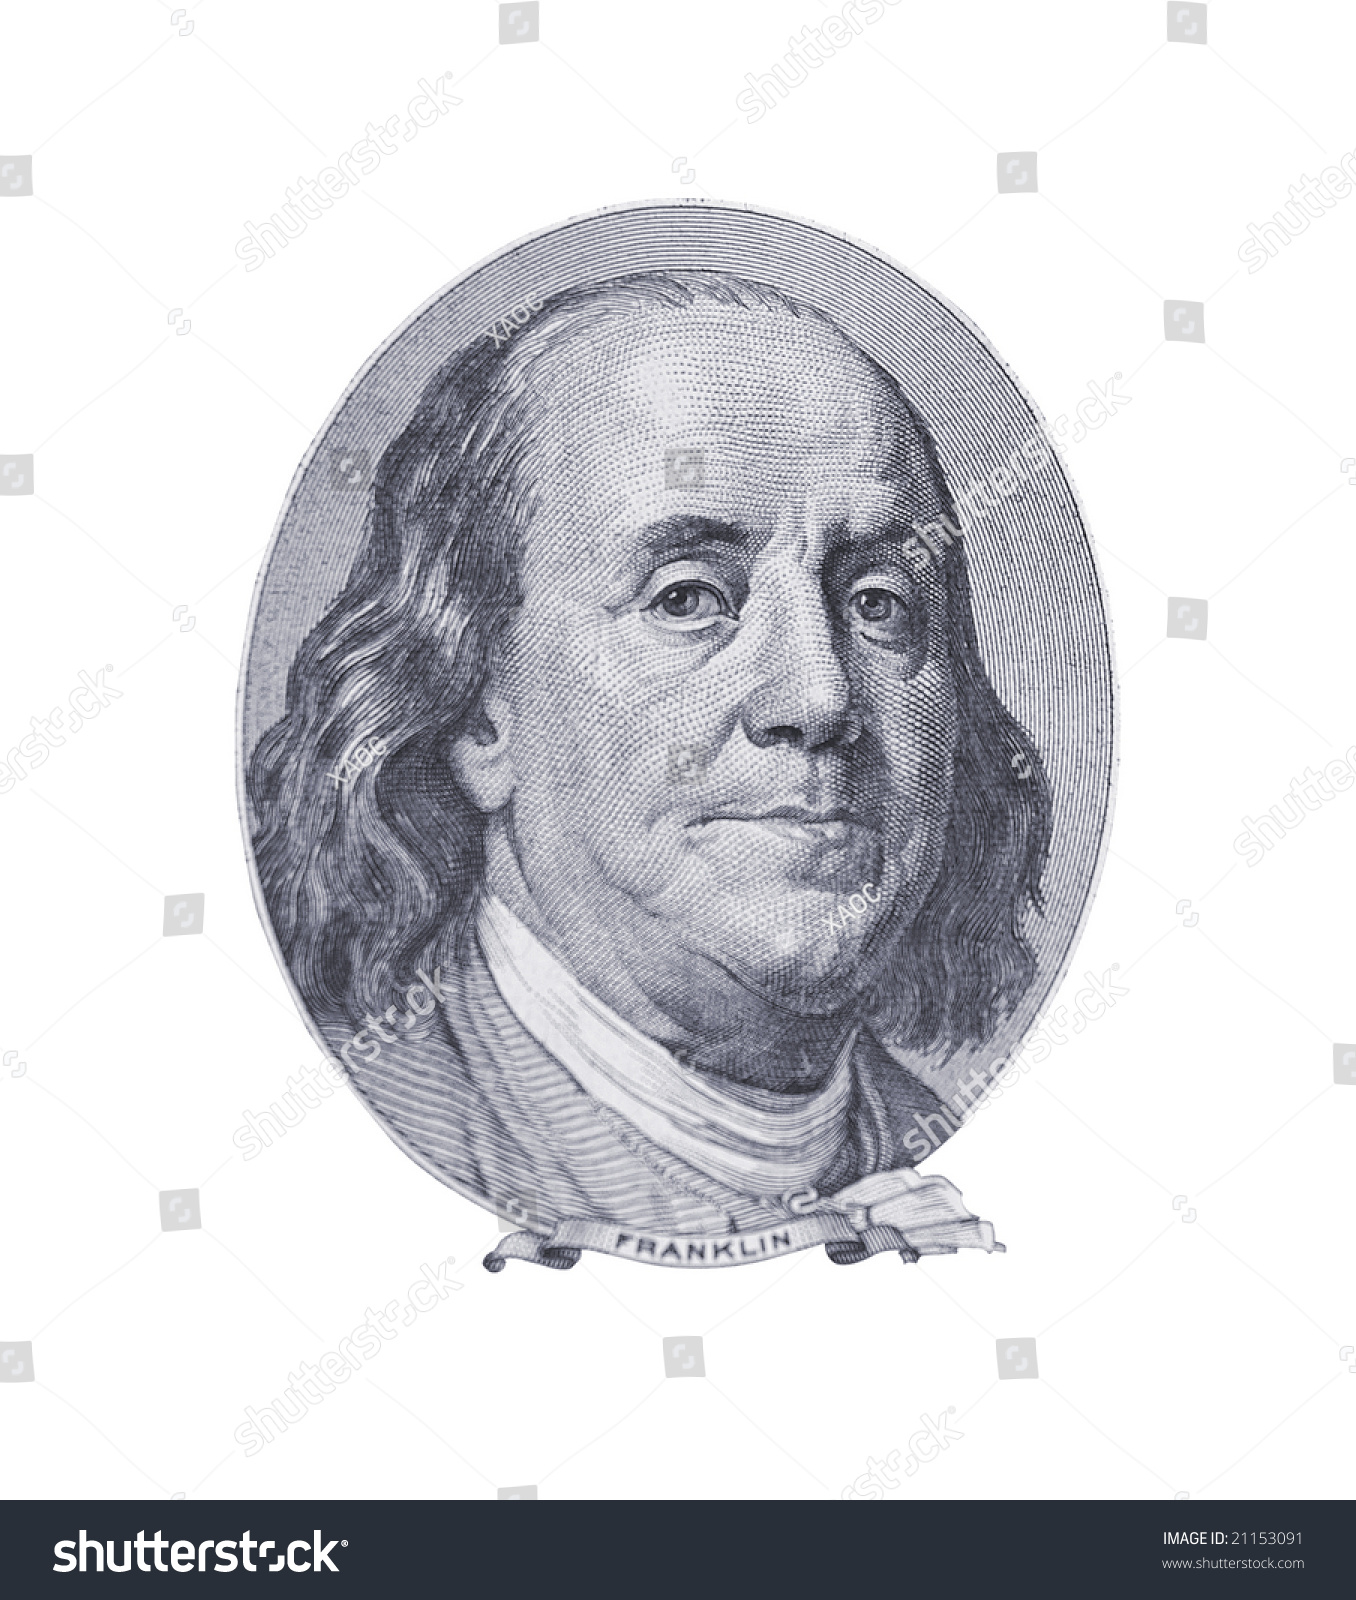 background of benjamin franklin essay It seems benjamin franklin had a certain fascination with farting as he wrote an essay titled, to the royal academy of farting, or also known as simply, fart proudly one great excerpt from this riveting essay includes, that the permitting this air to escape and mix with the atmosphere, is.